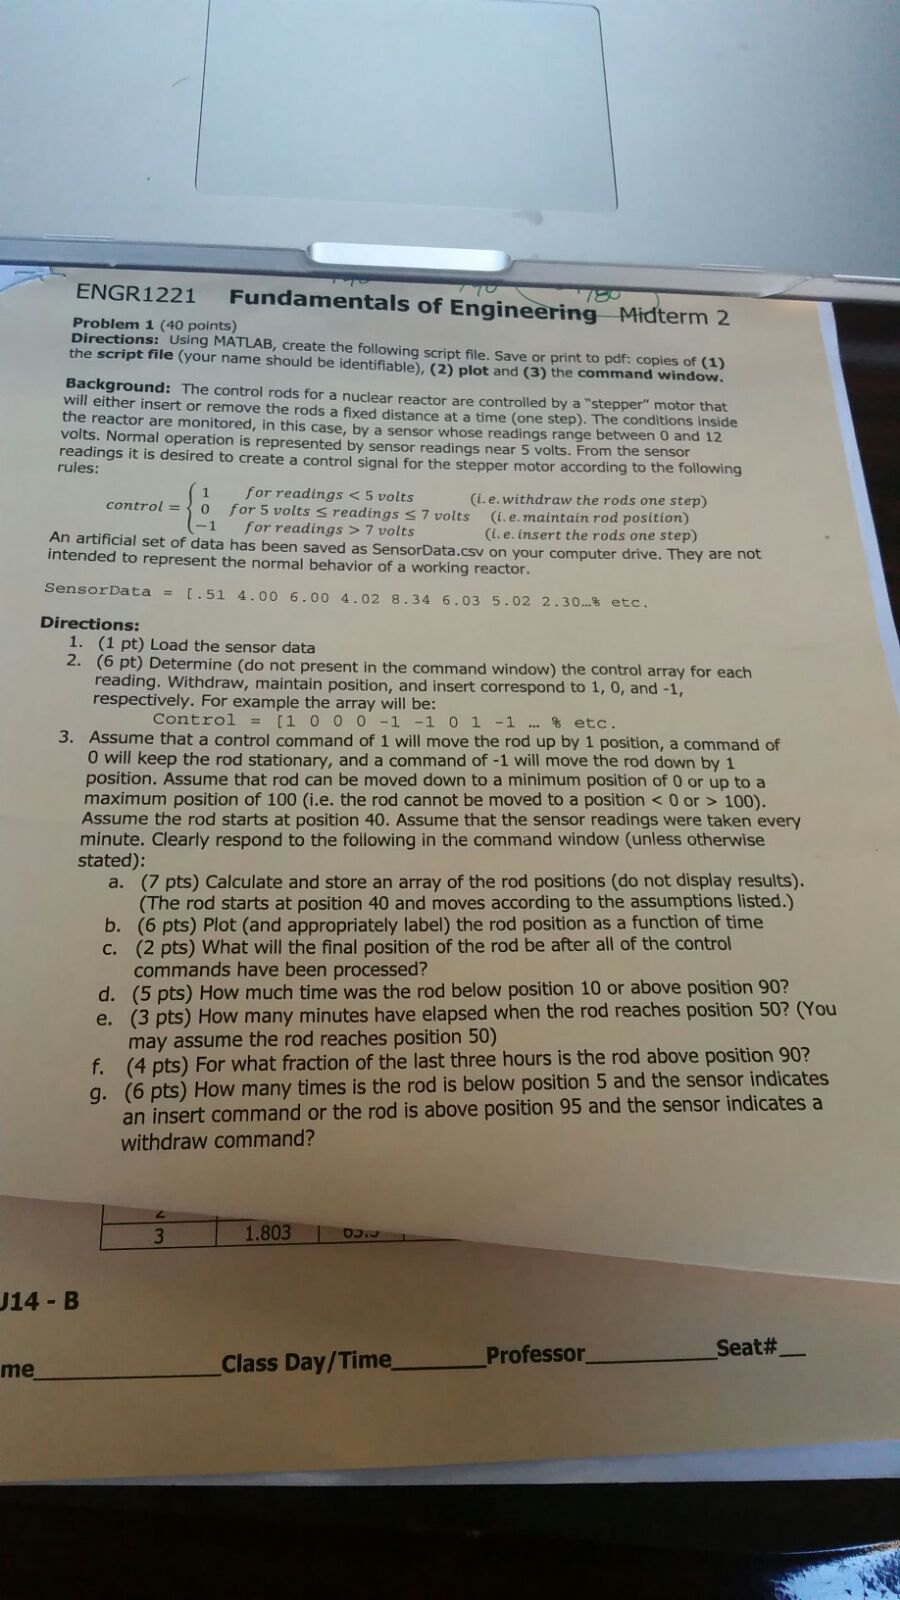 I need these english questions answered so I can study for my test. 10pts. PLEASE?